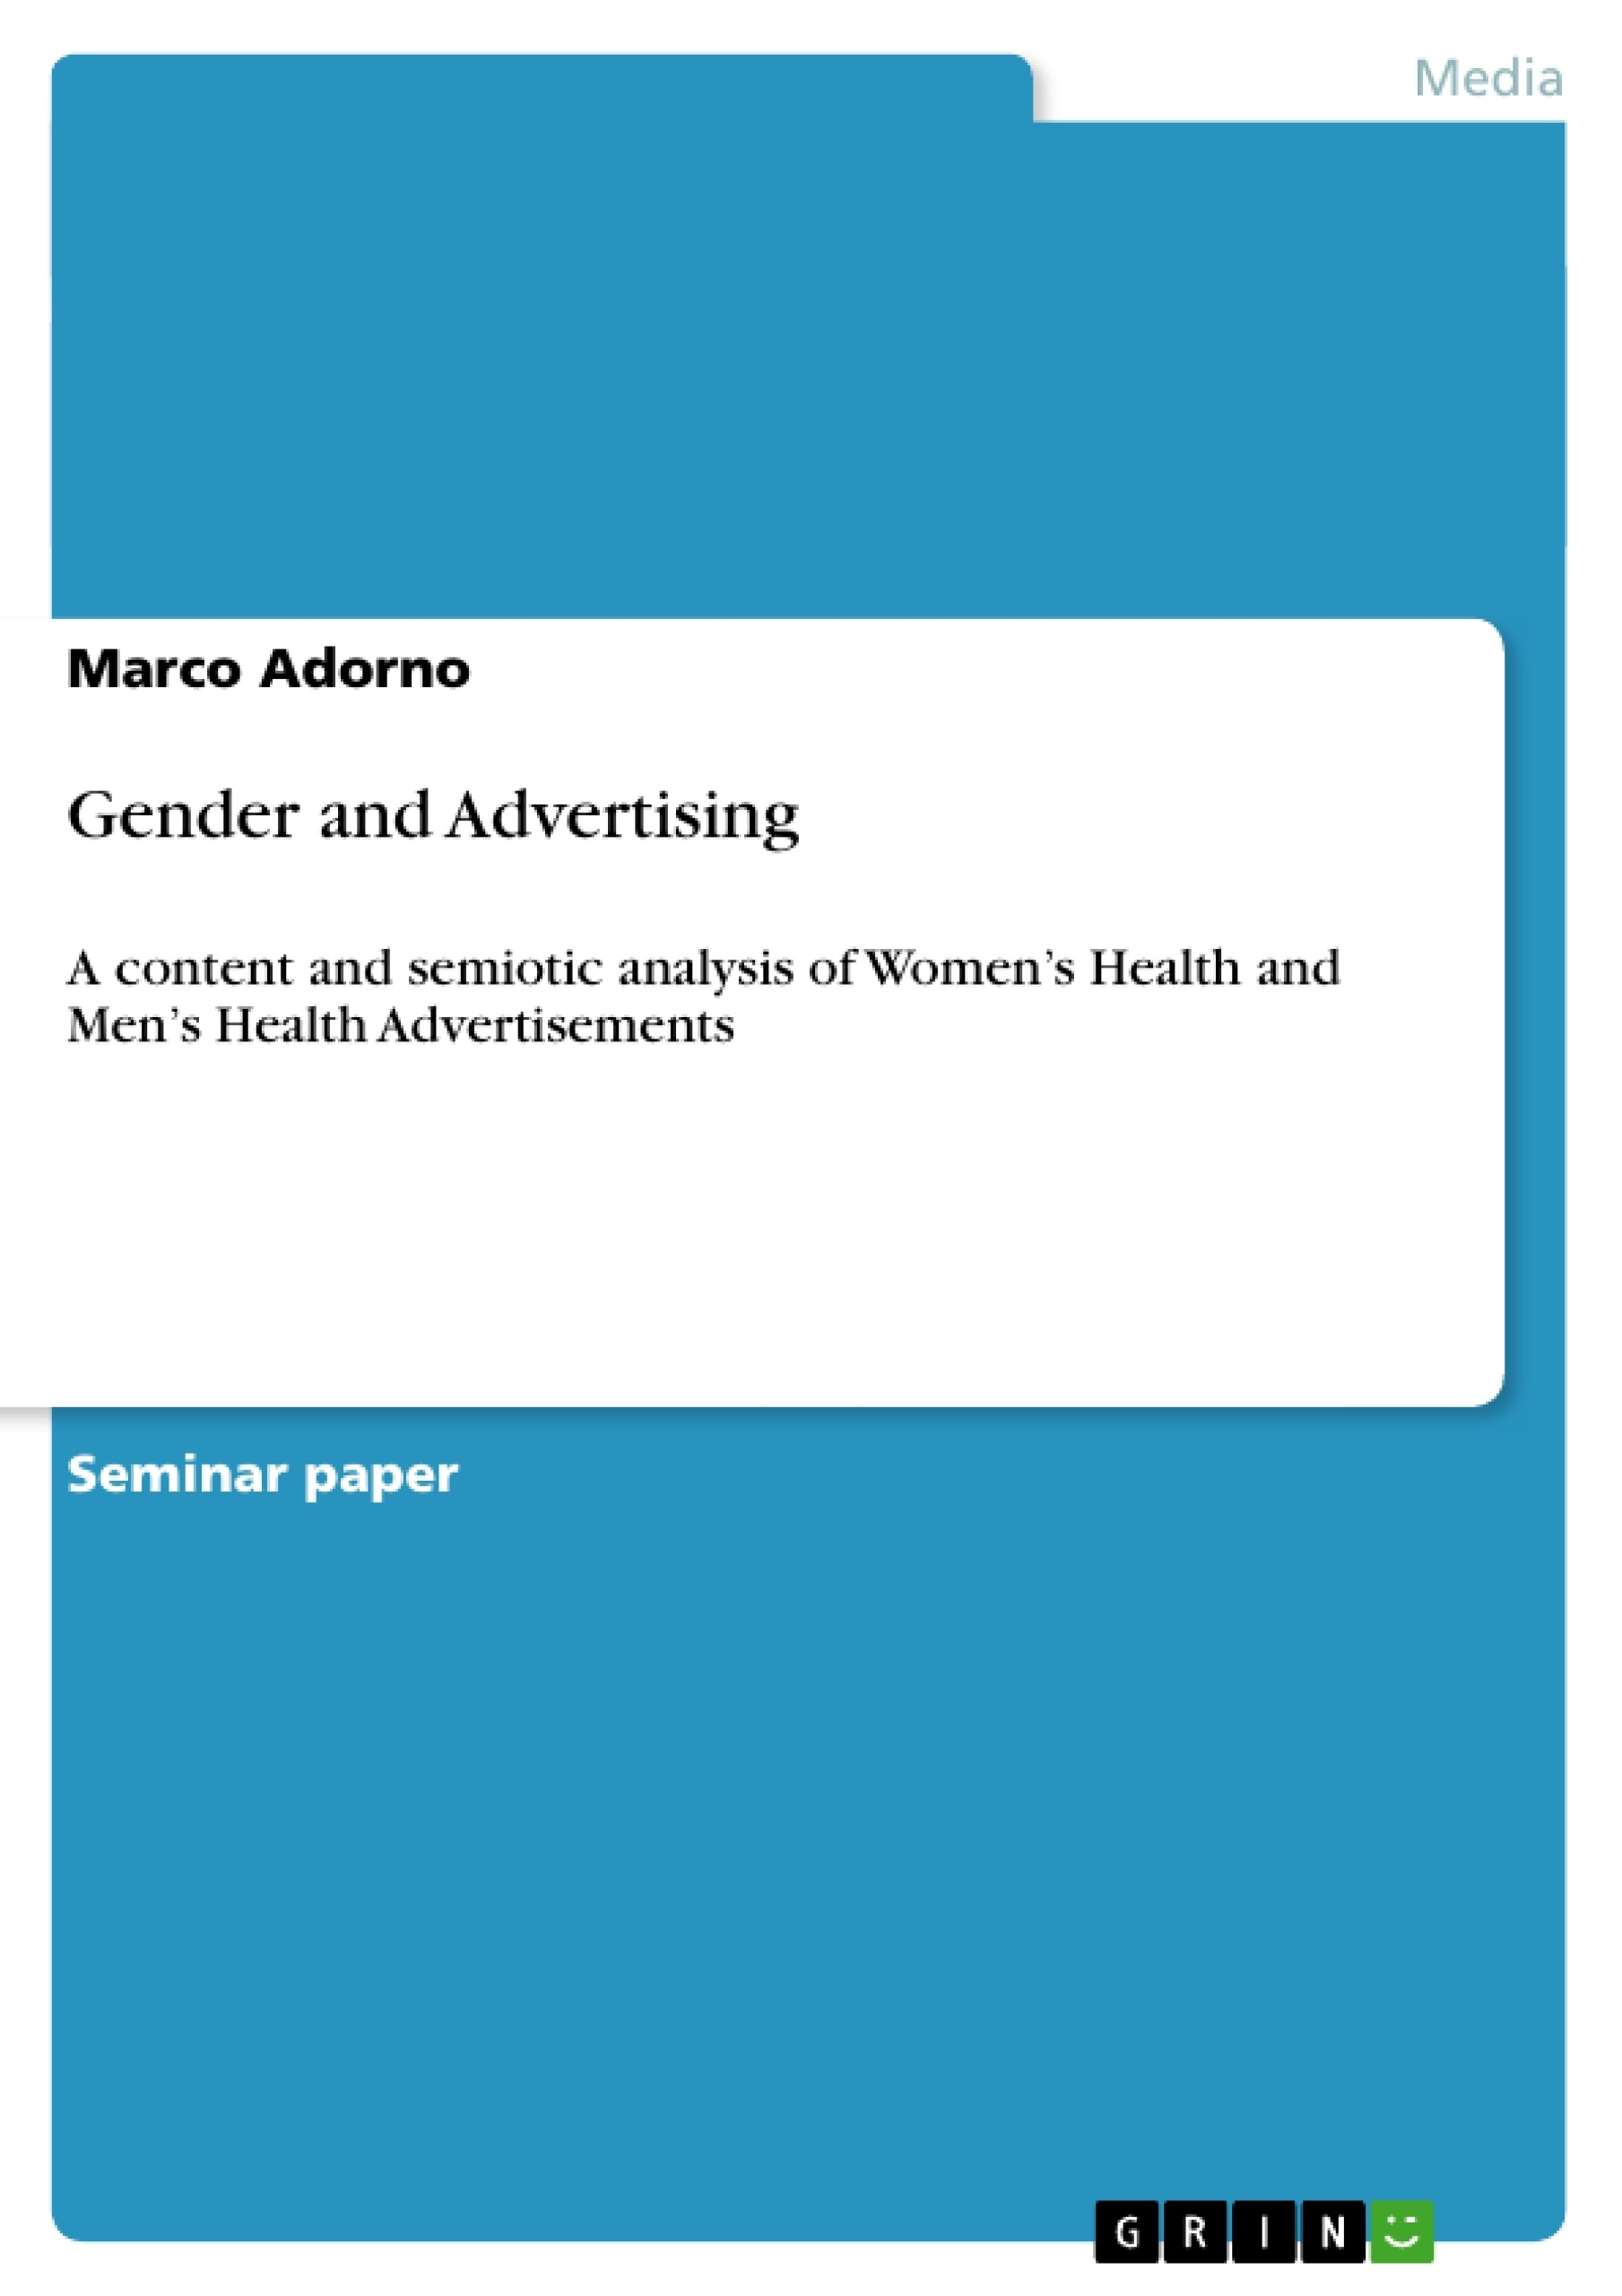 gender and advertising publish your master s thesis bachelor s gender and advertising publish your master s thesis bachelor s thesis essay or term paper